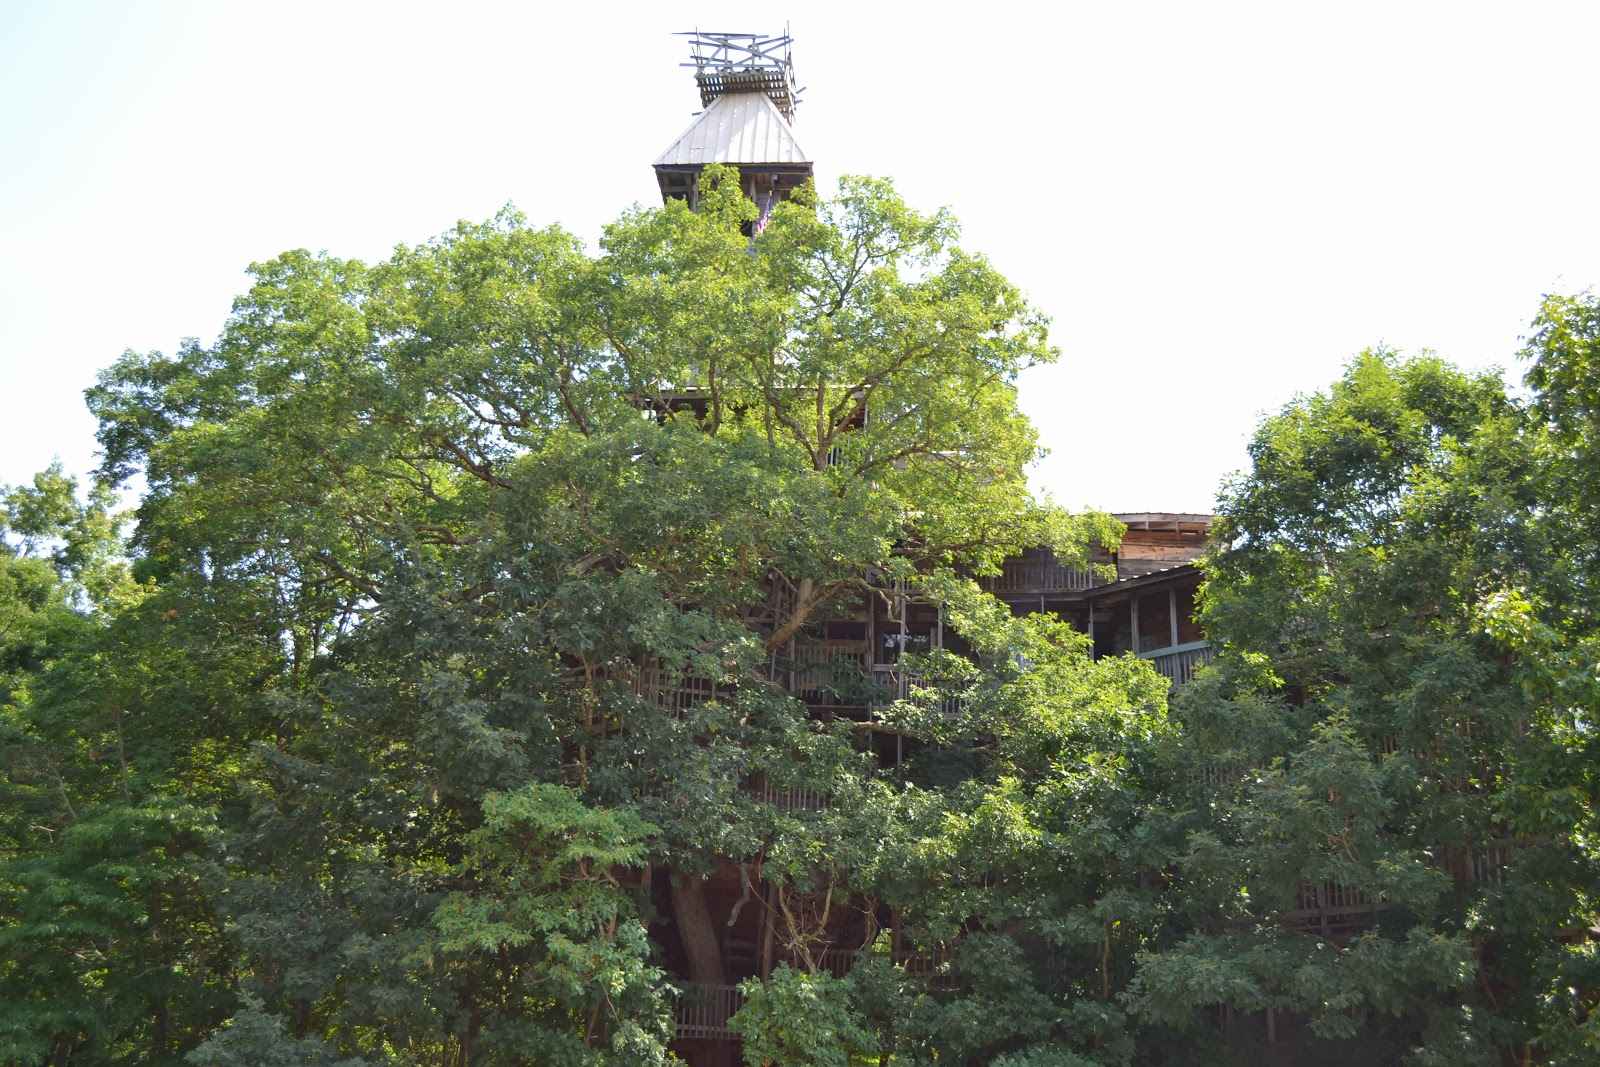 Biggest Treehouse In The World 2015 meanwhile back on the ponderosa. . .: world's largest treehouse